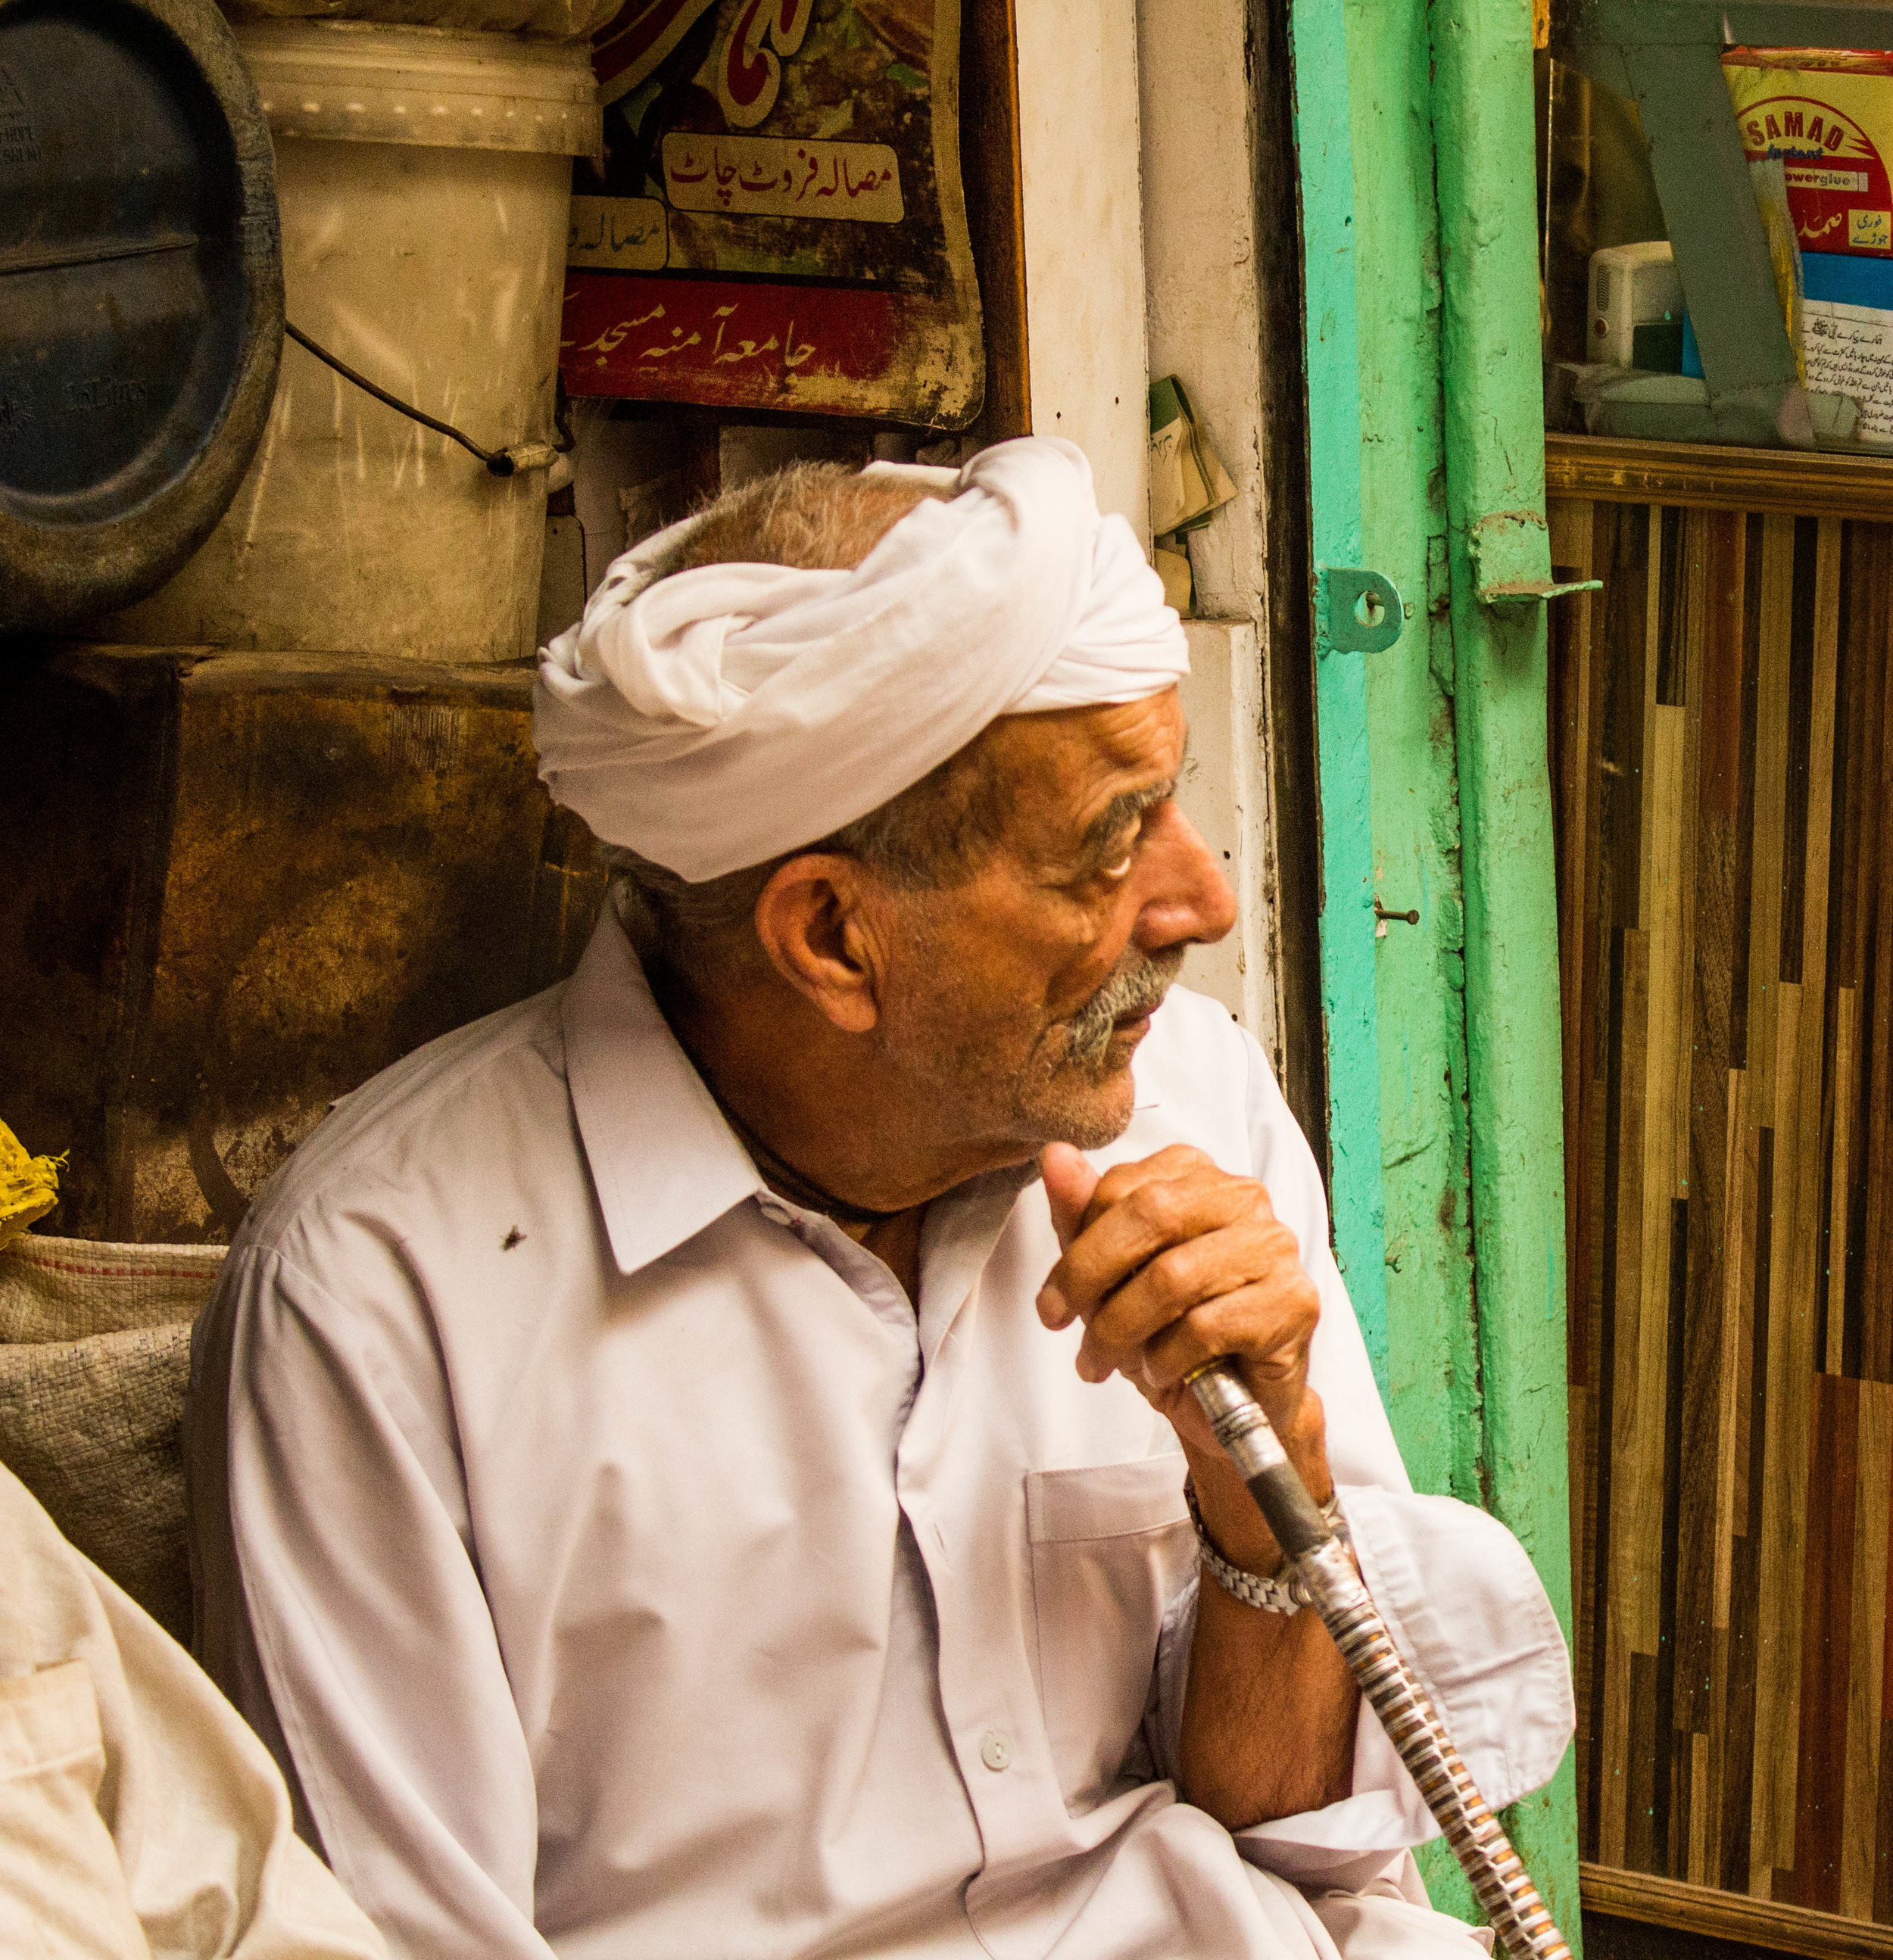 An elderly man people watches near the Lahori gate of Old Lahore.